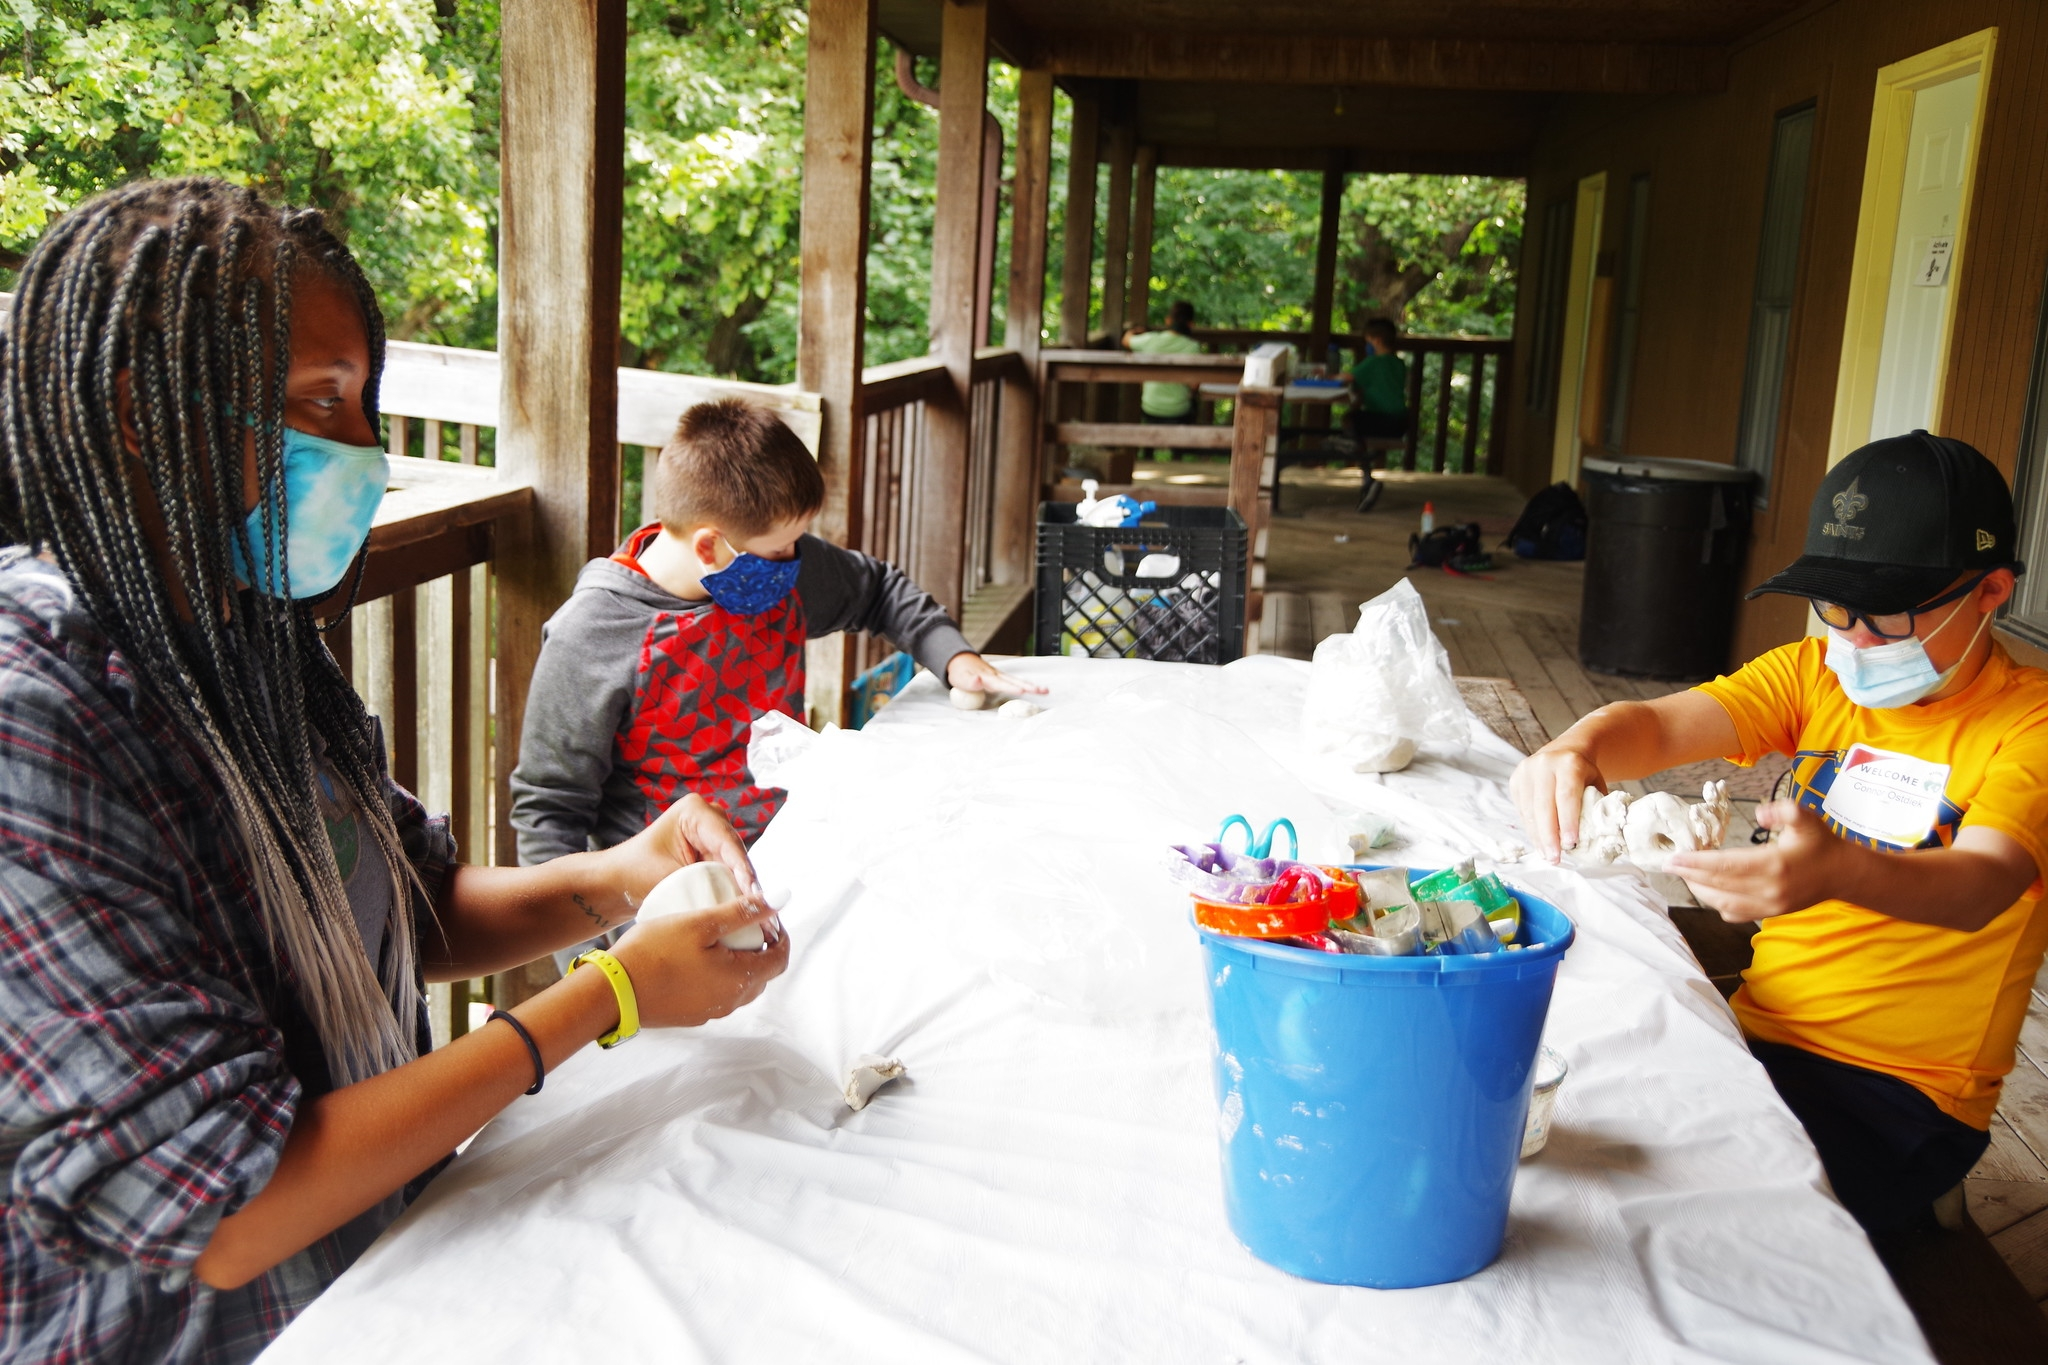 A counselor and two campers play with clay outside while wearing masks